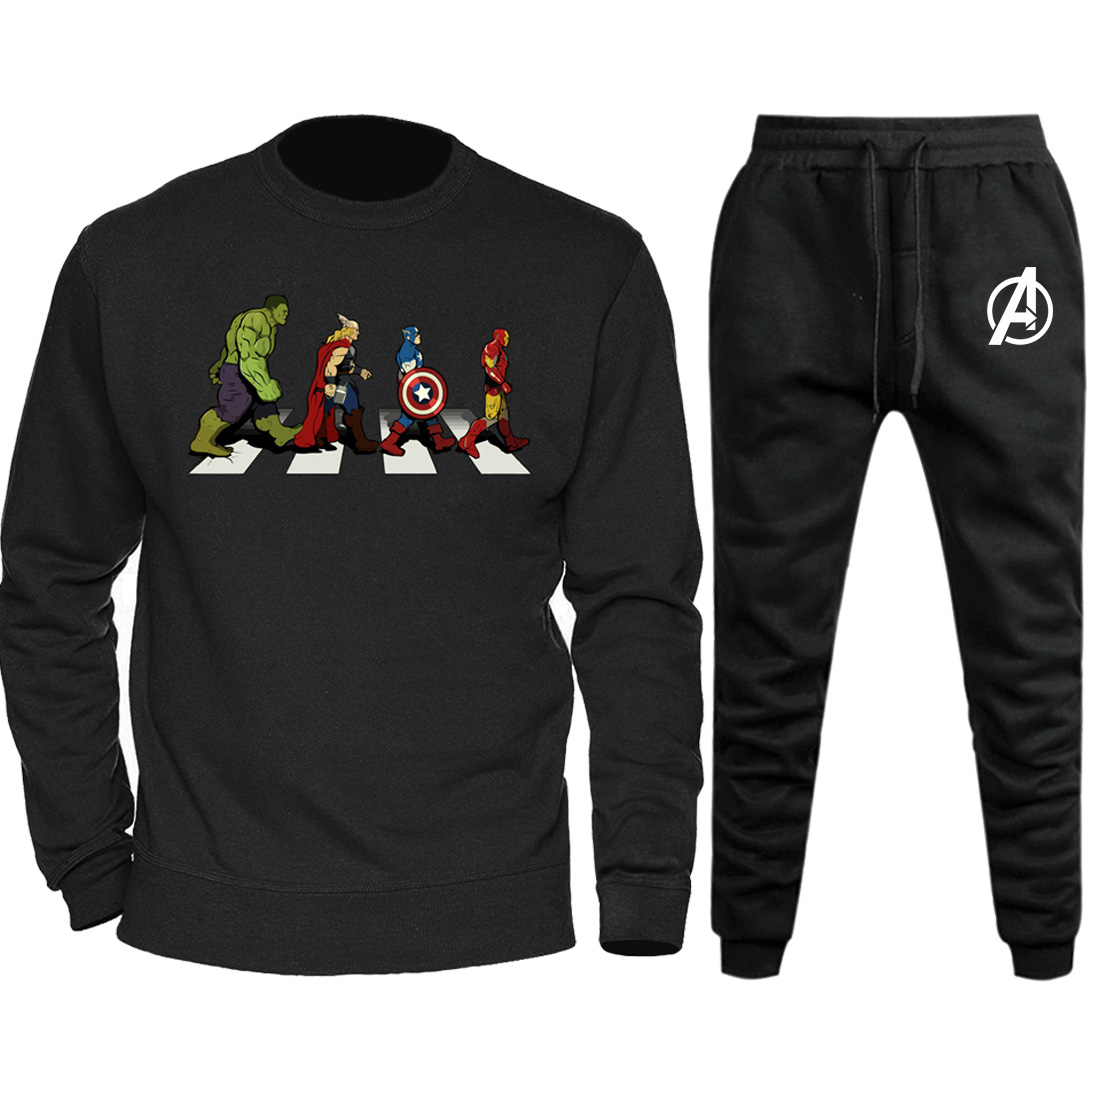 Men Hoodies+Pant Sets Marvel Spiderman Iron Man Avengers 2019 Autumn Winter Men's Hoodie Funny Hip Hop Streetwear Sweatshirt Set